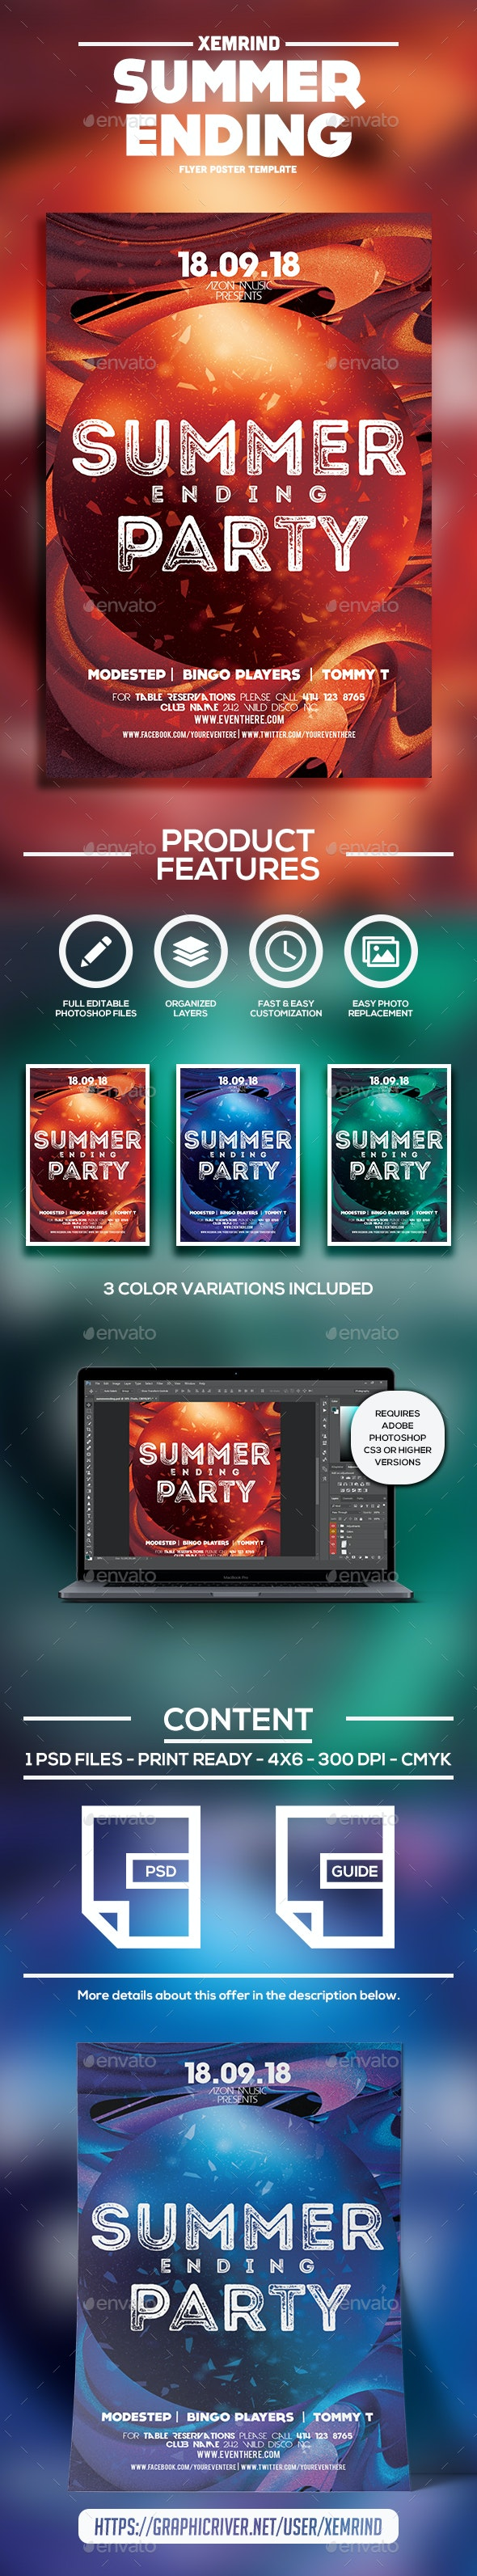 Summer Ending Flyer/Poster Template - Events Flyers